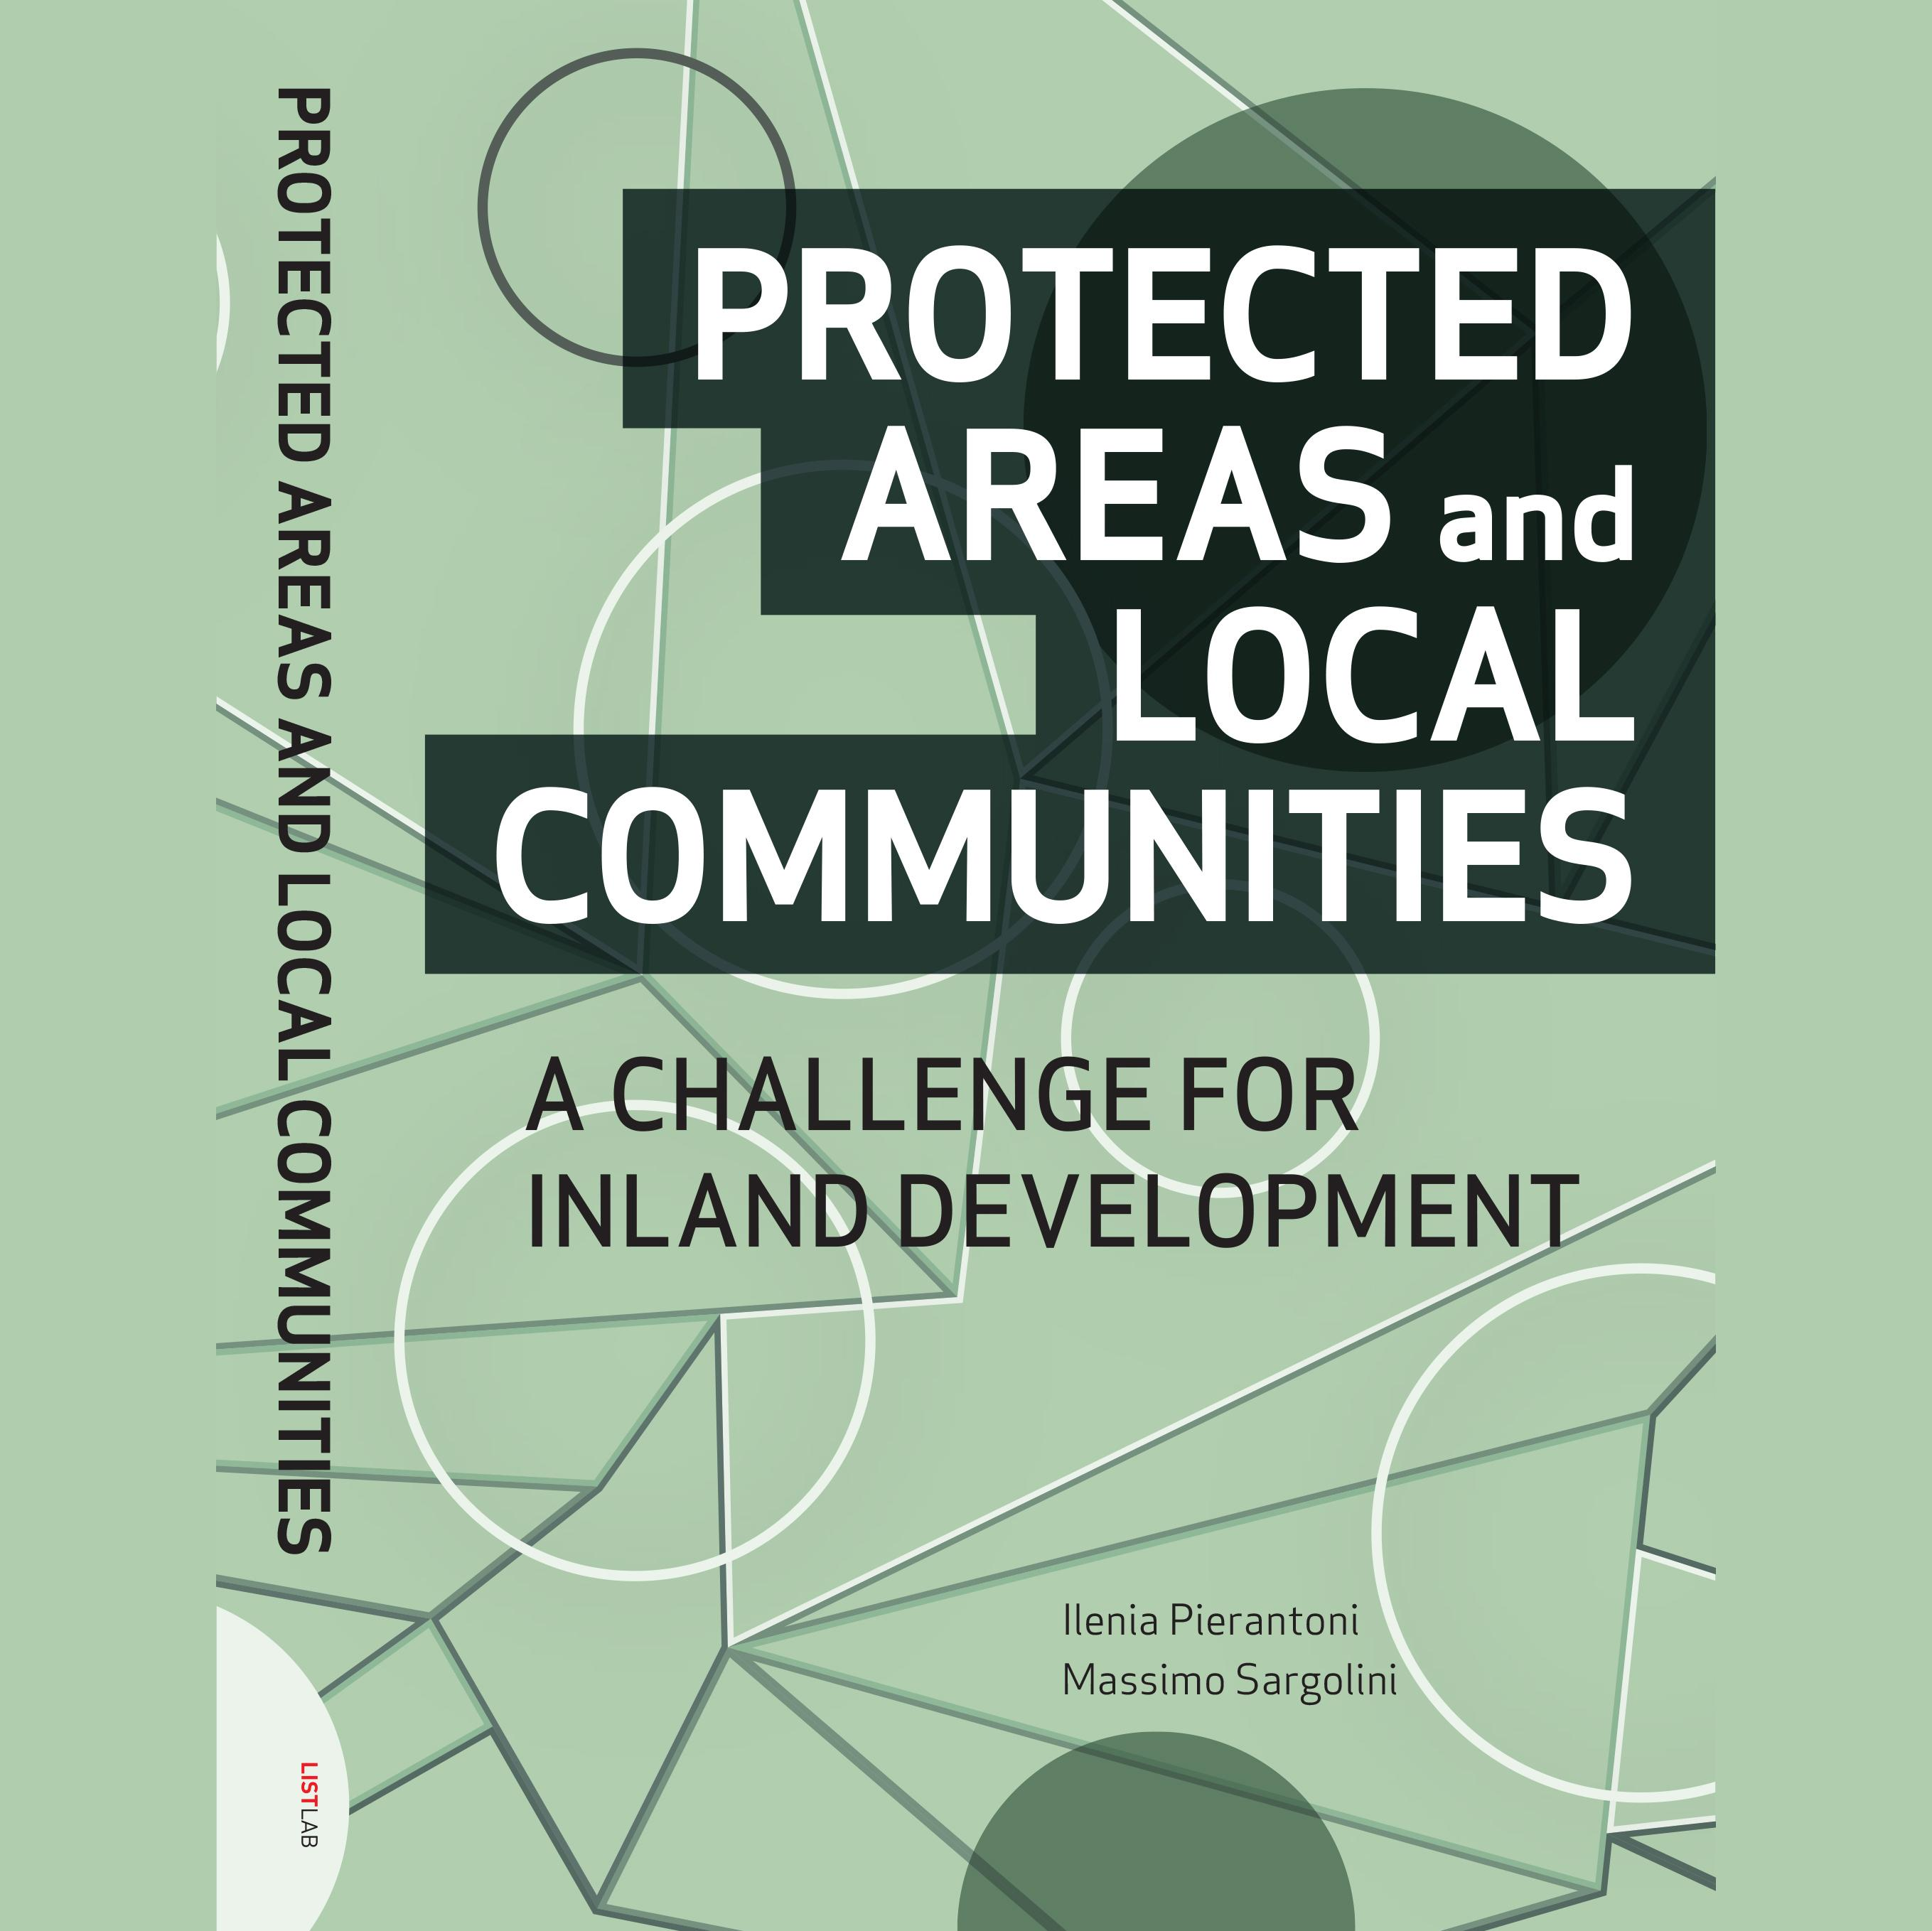 Protected areas and local communities. A challenge for inland development